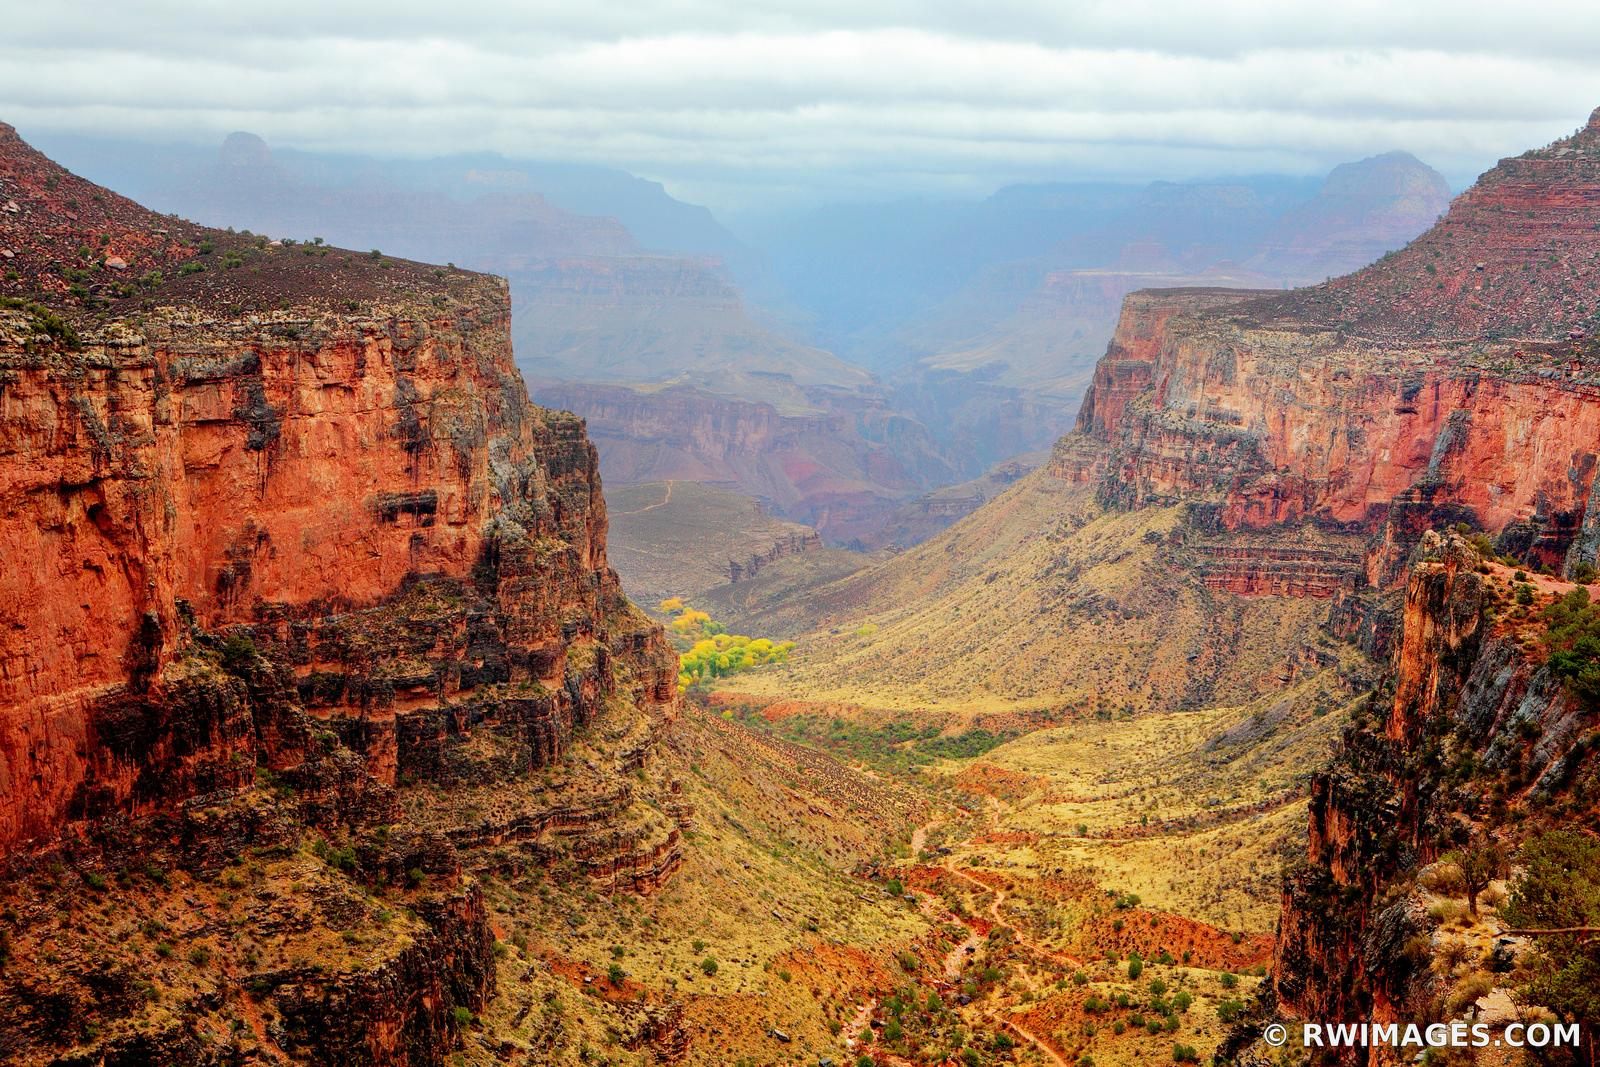 BRIGHT ANGEL TRAIL AND INDIAN GARDENS GRAND CANYON ARIZONA AMERICAN SOUTHWEST LANDSCAPE